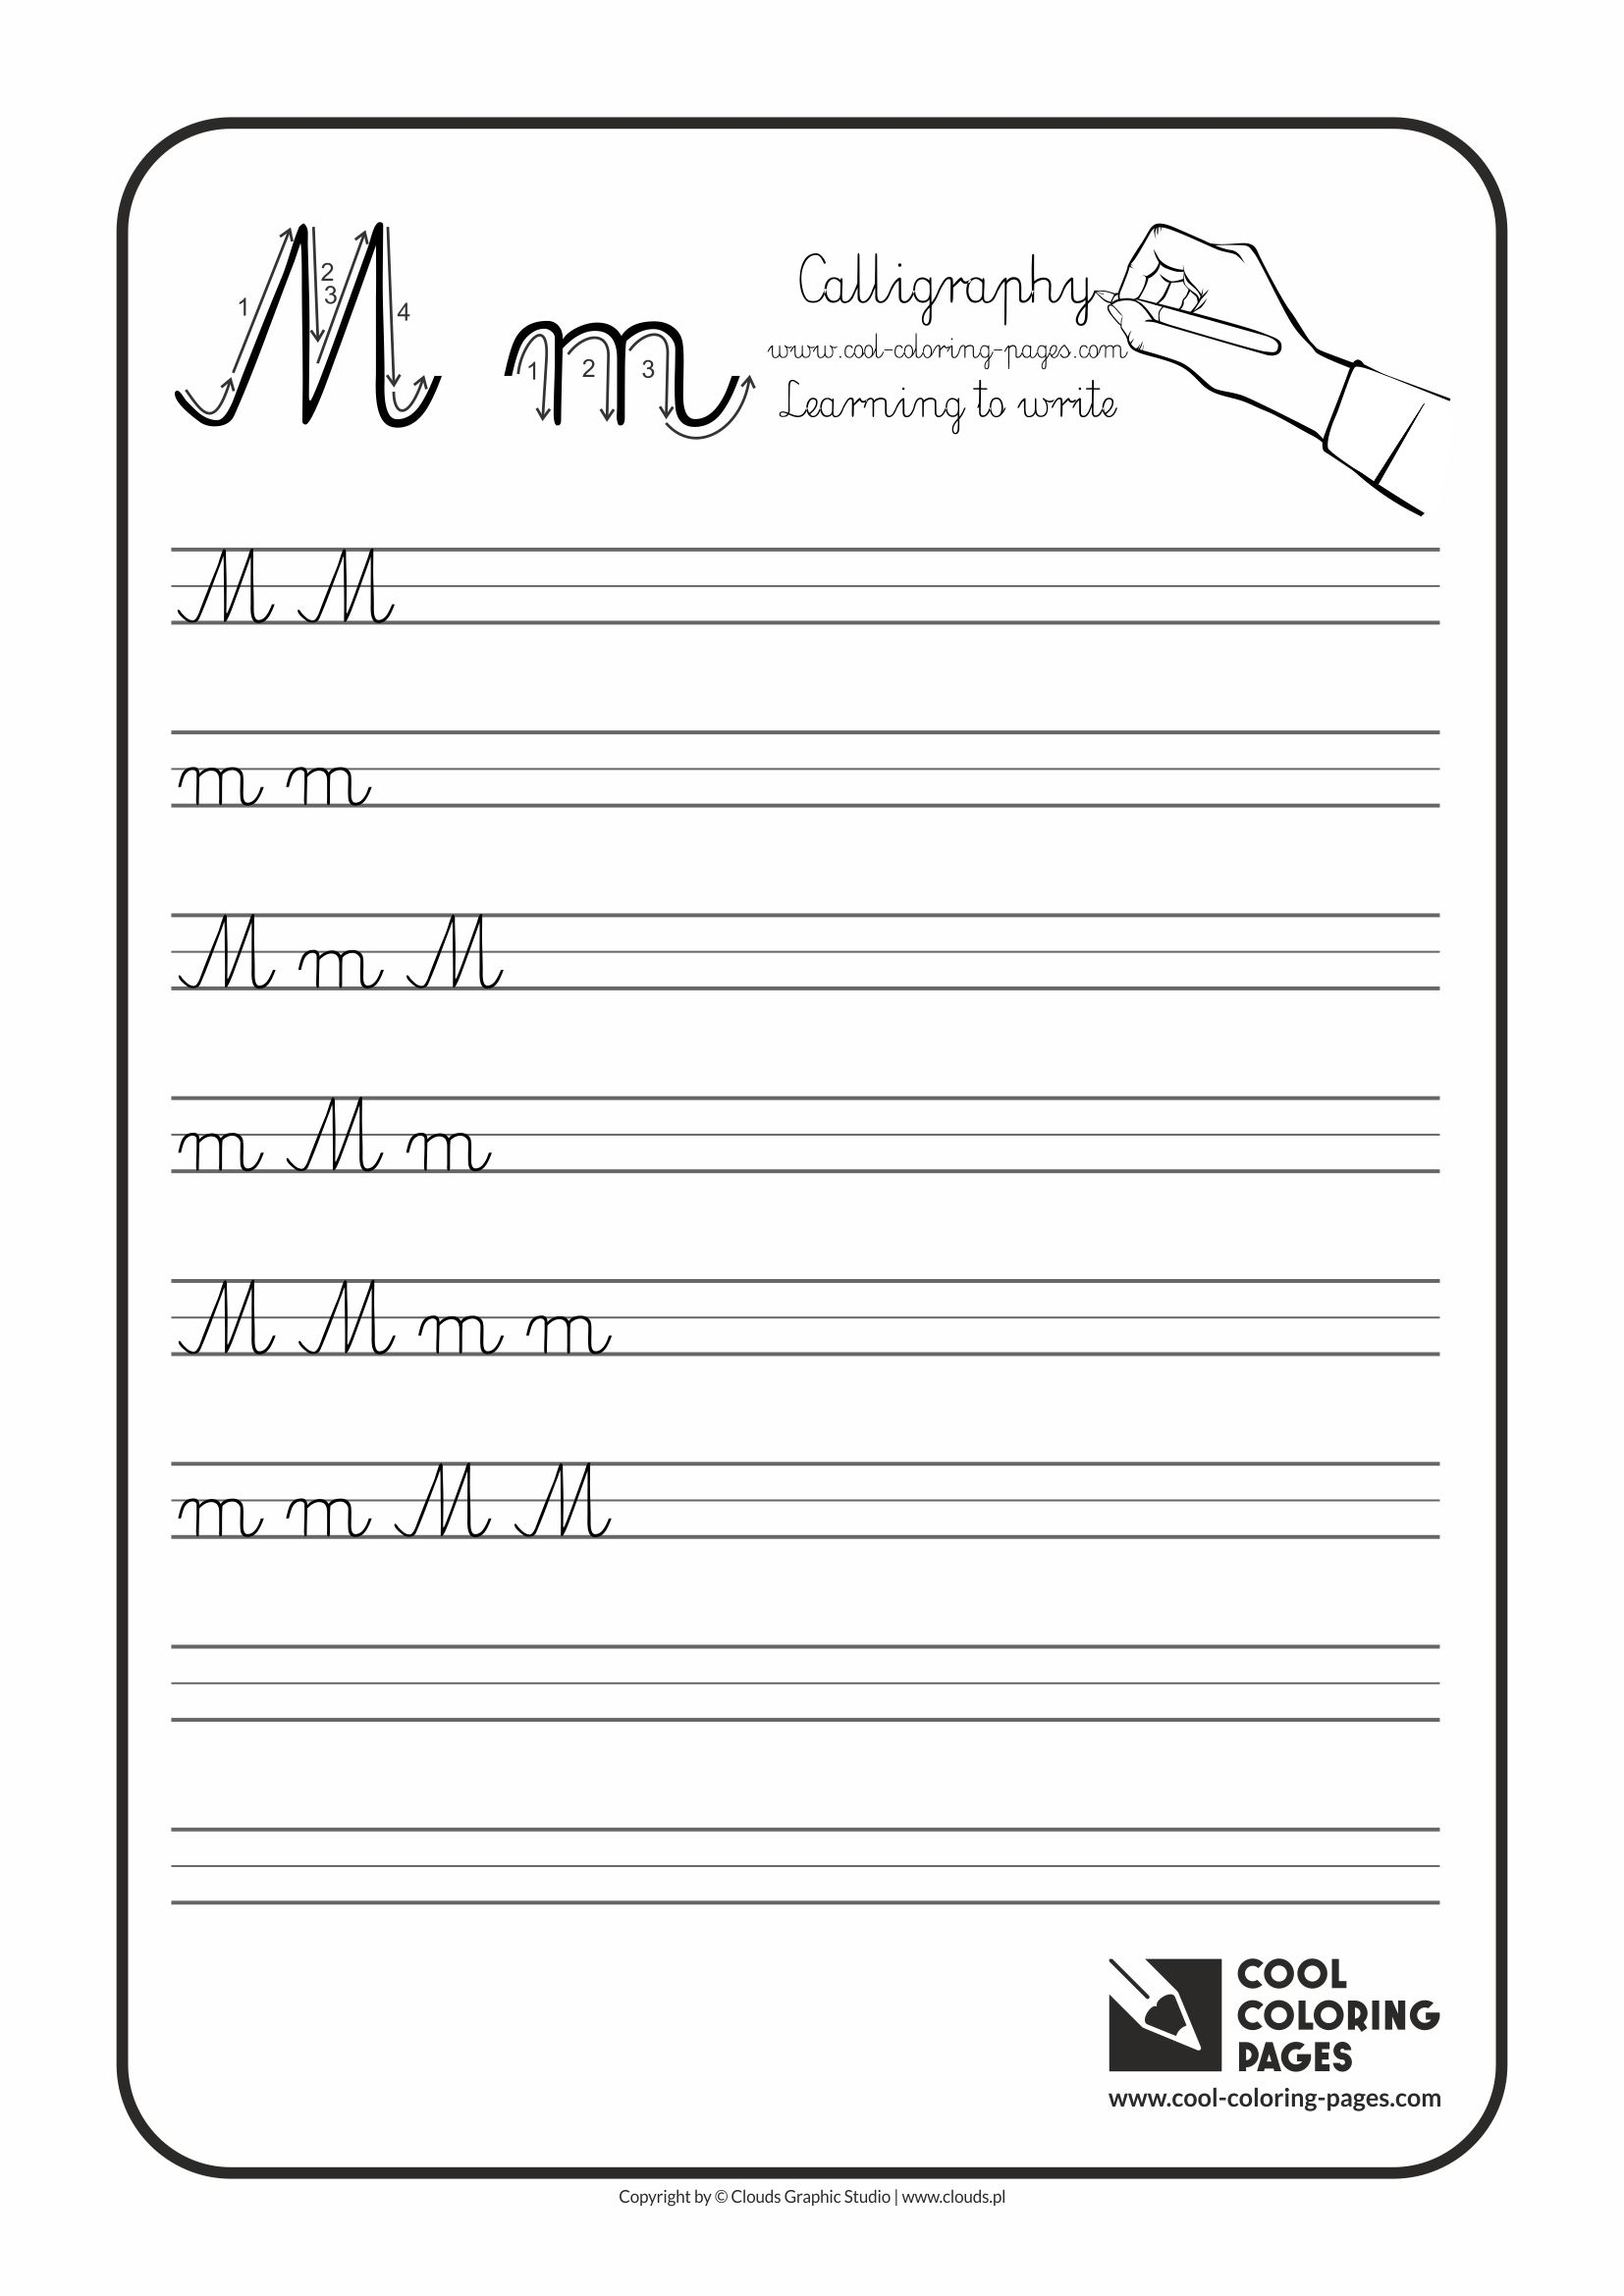 Calligraphy for kids letters cool coloring pages Calligraphy pages